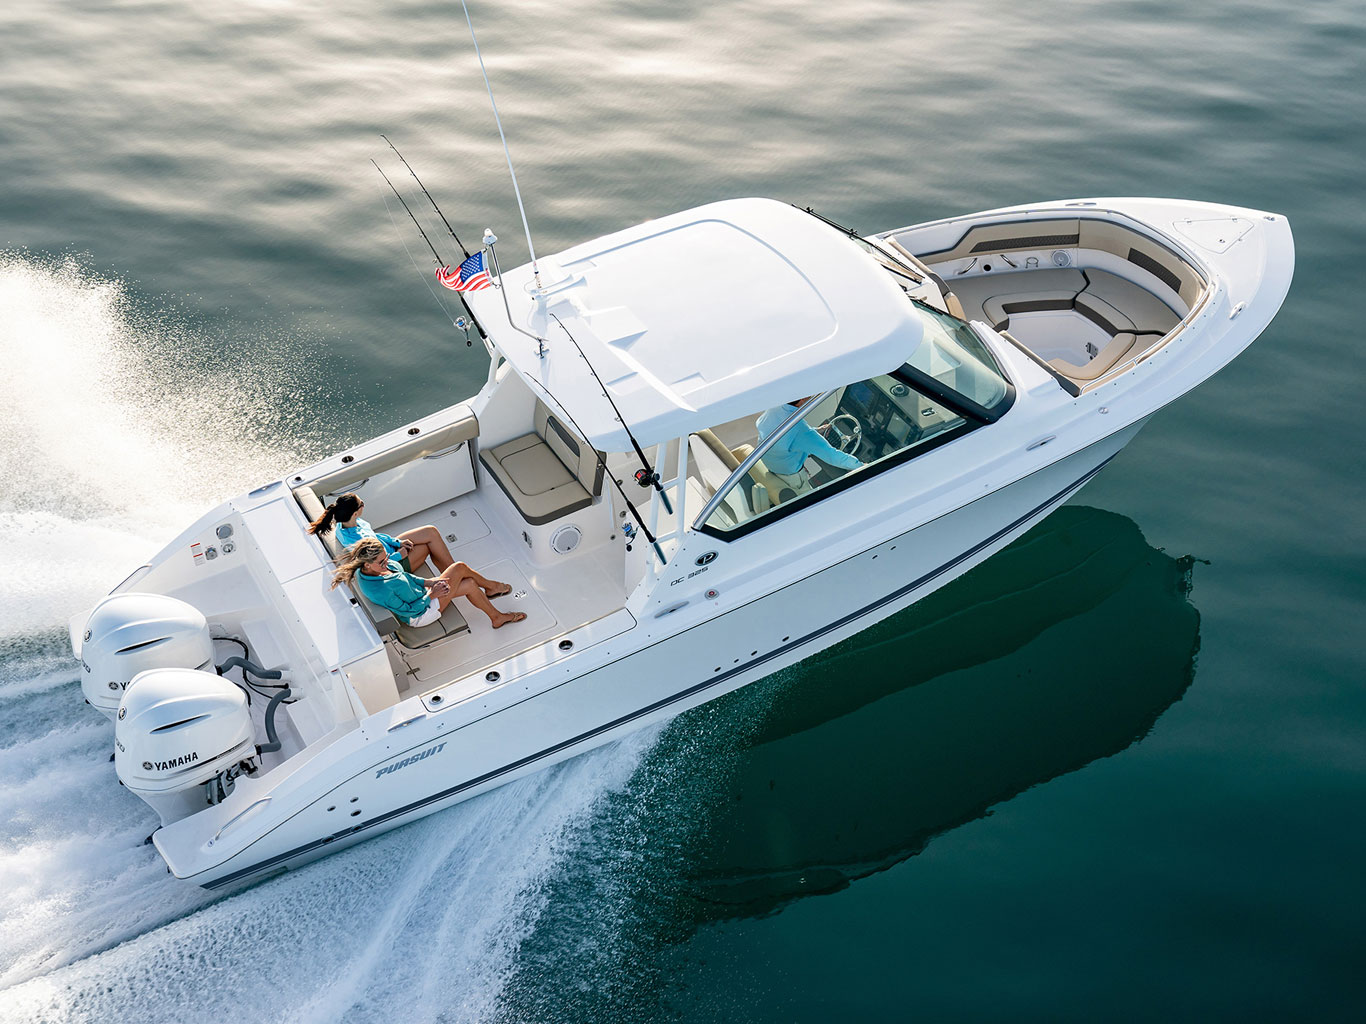 hight resolution of the dc 325 dual console combines central utility a starboard side helm center and tremendous seating functionality into an elegantly styled boat